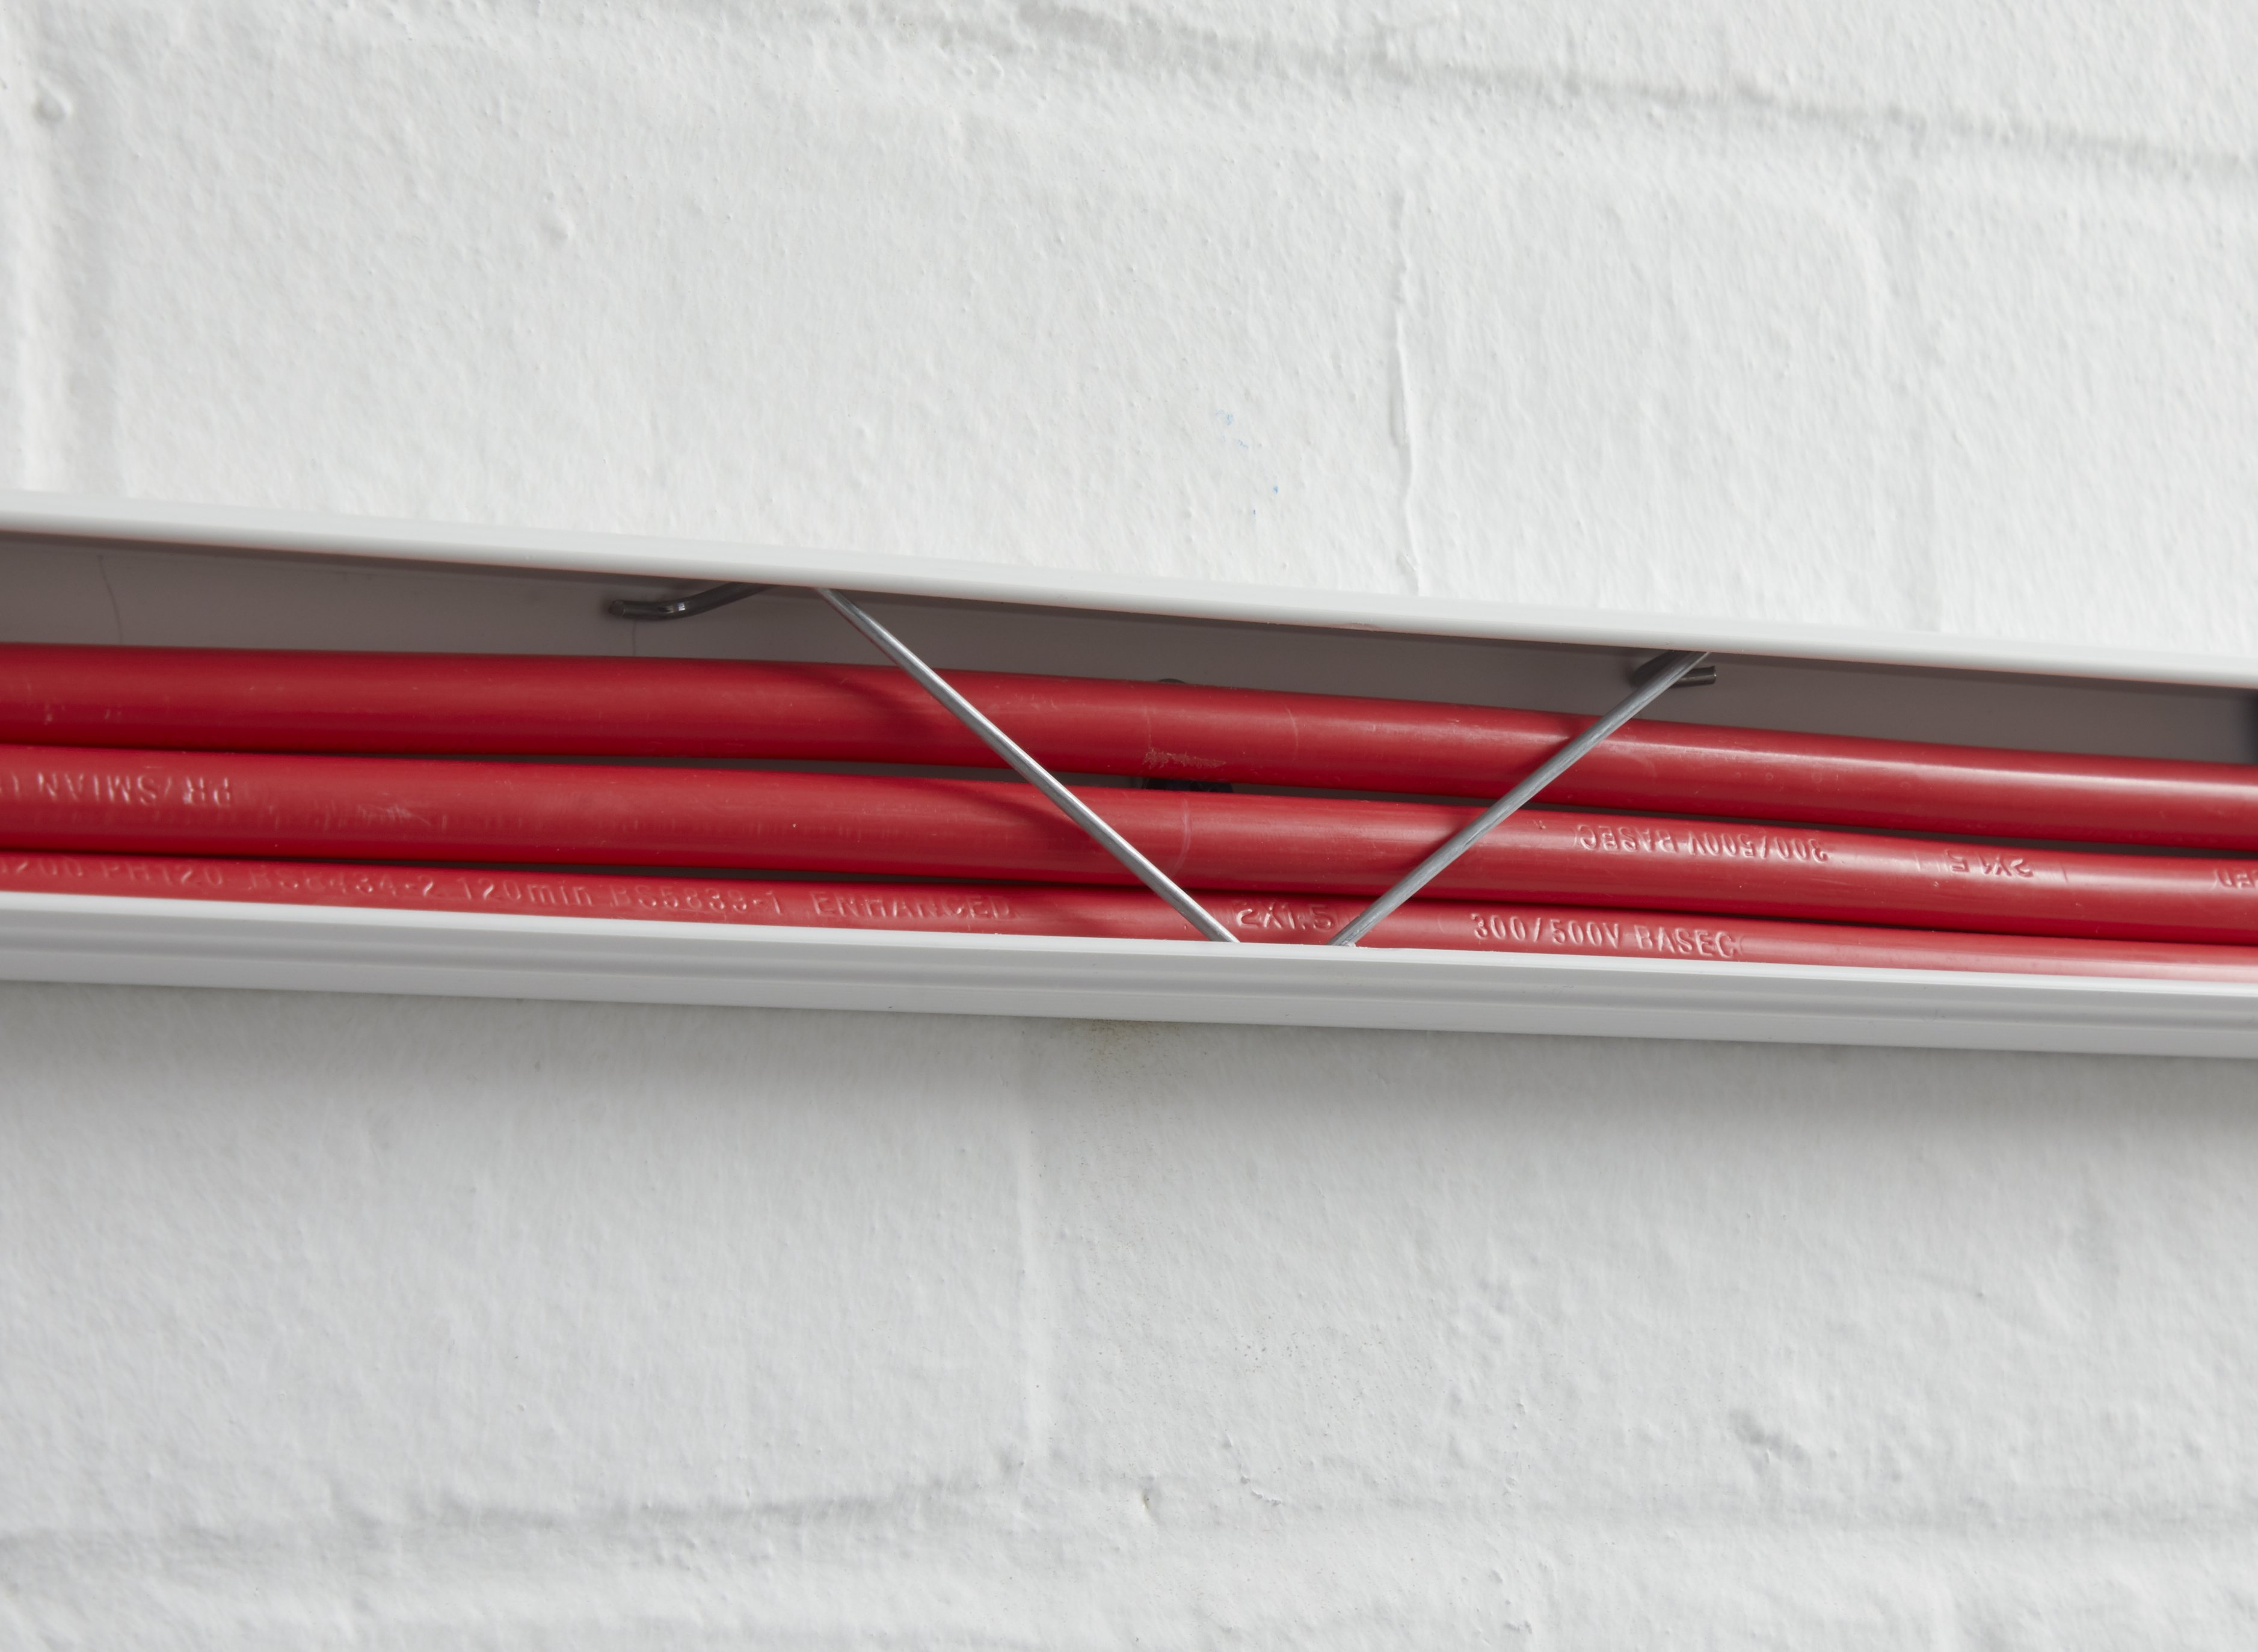 Dramatically reducing the risk of cable entrapment in fires